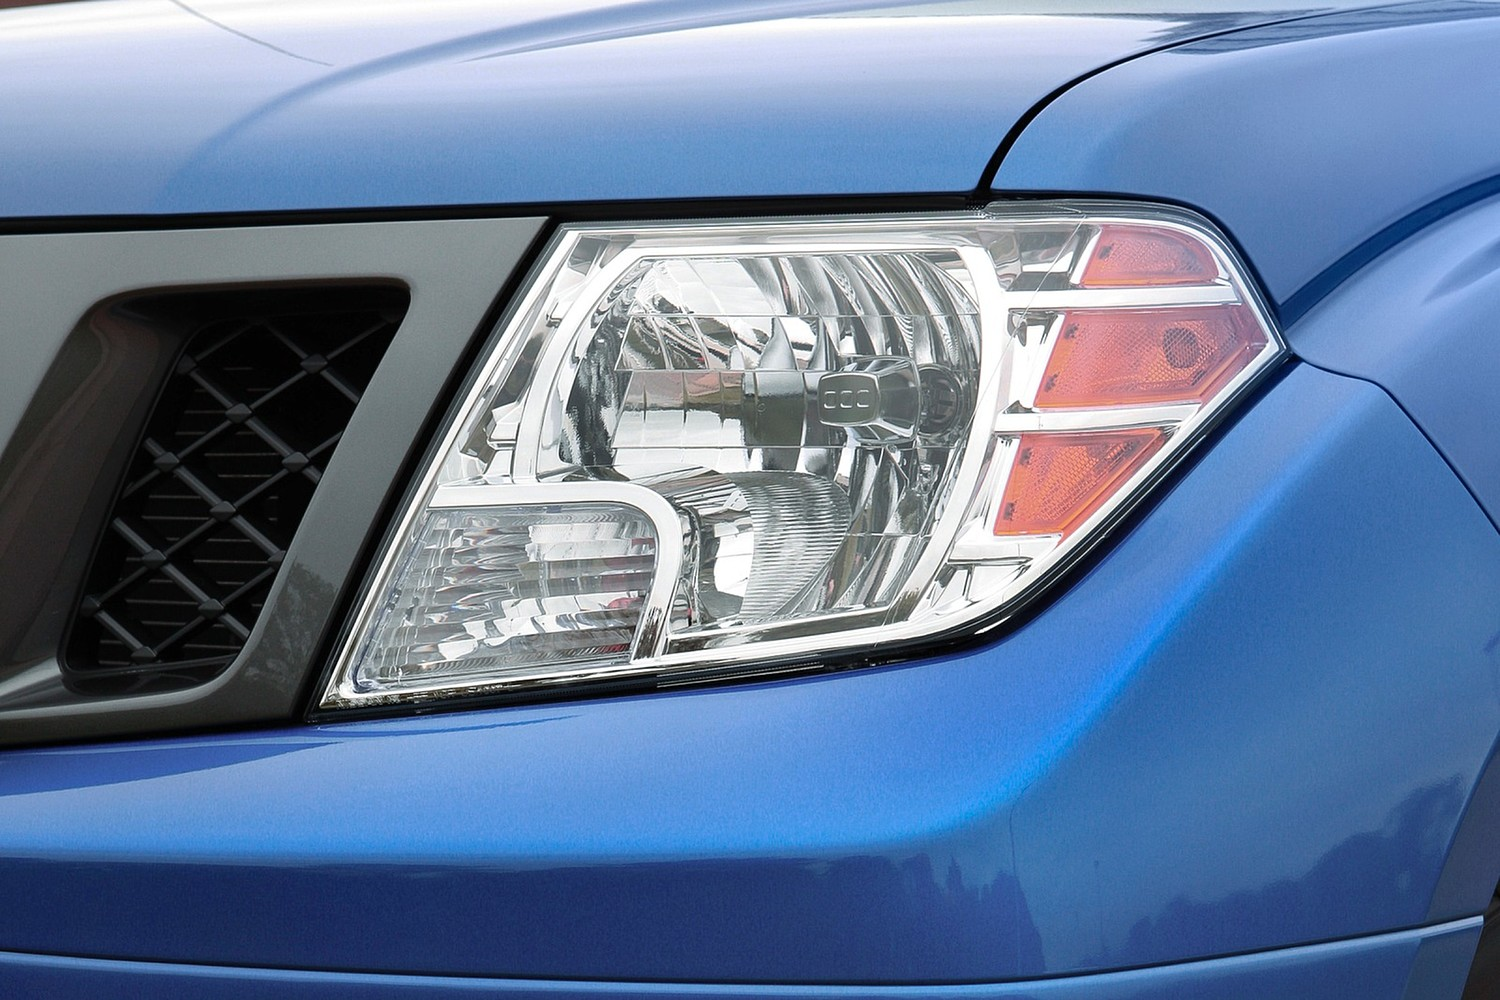 Nissan Frontier Headlamp Detail (2013 model year shown)